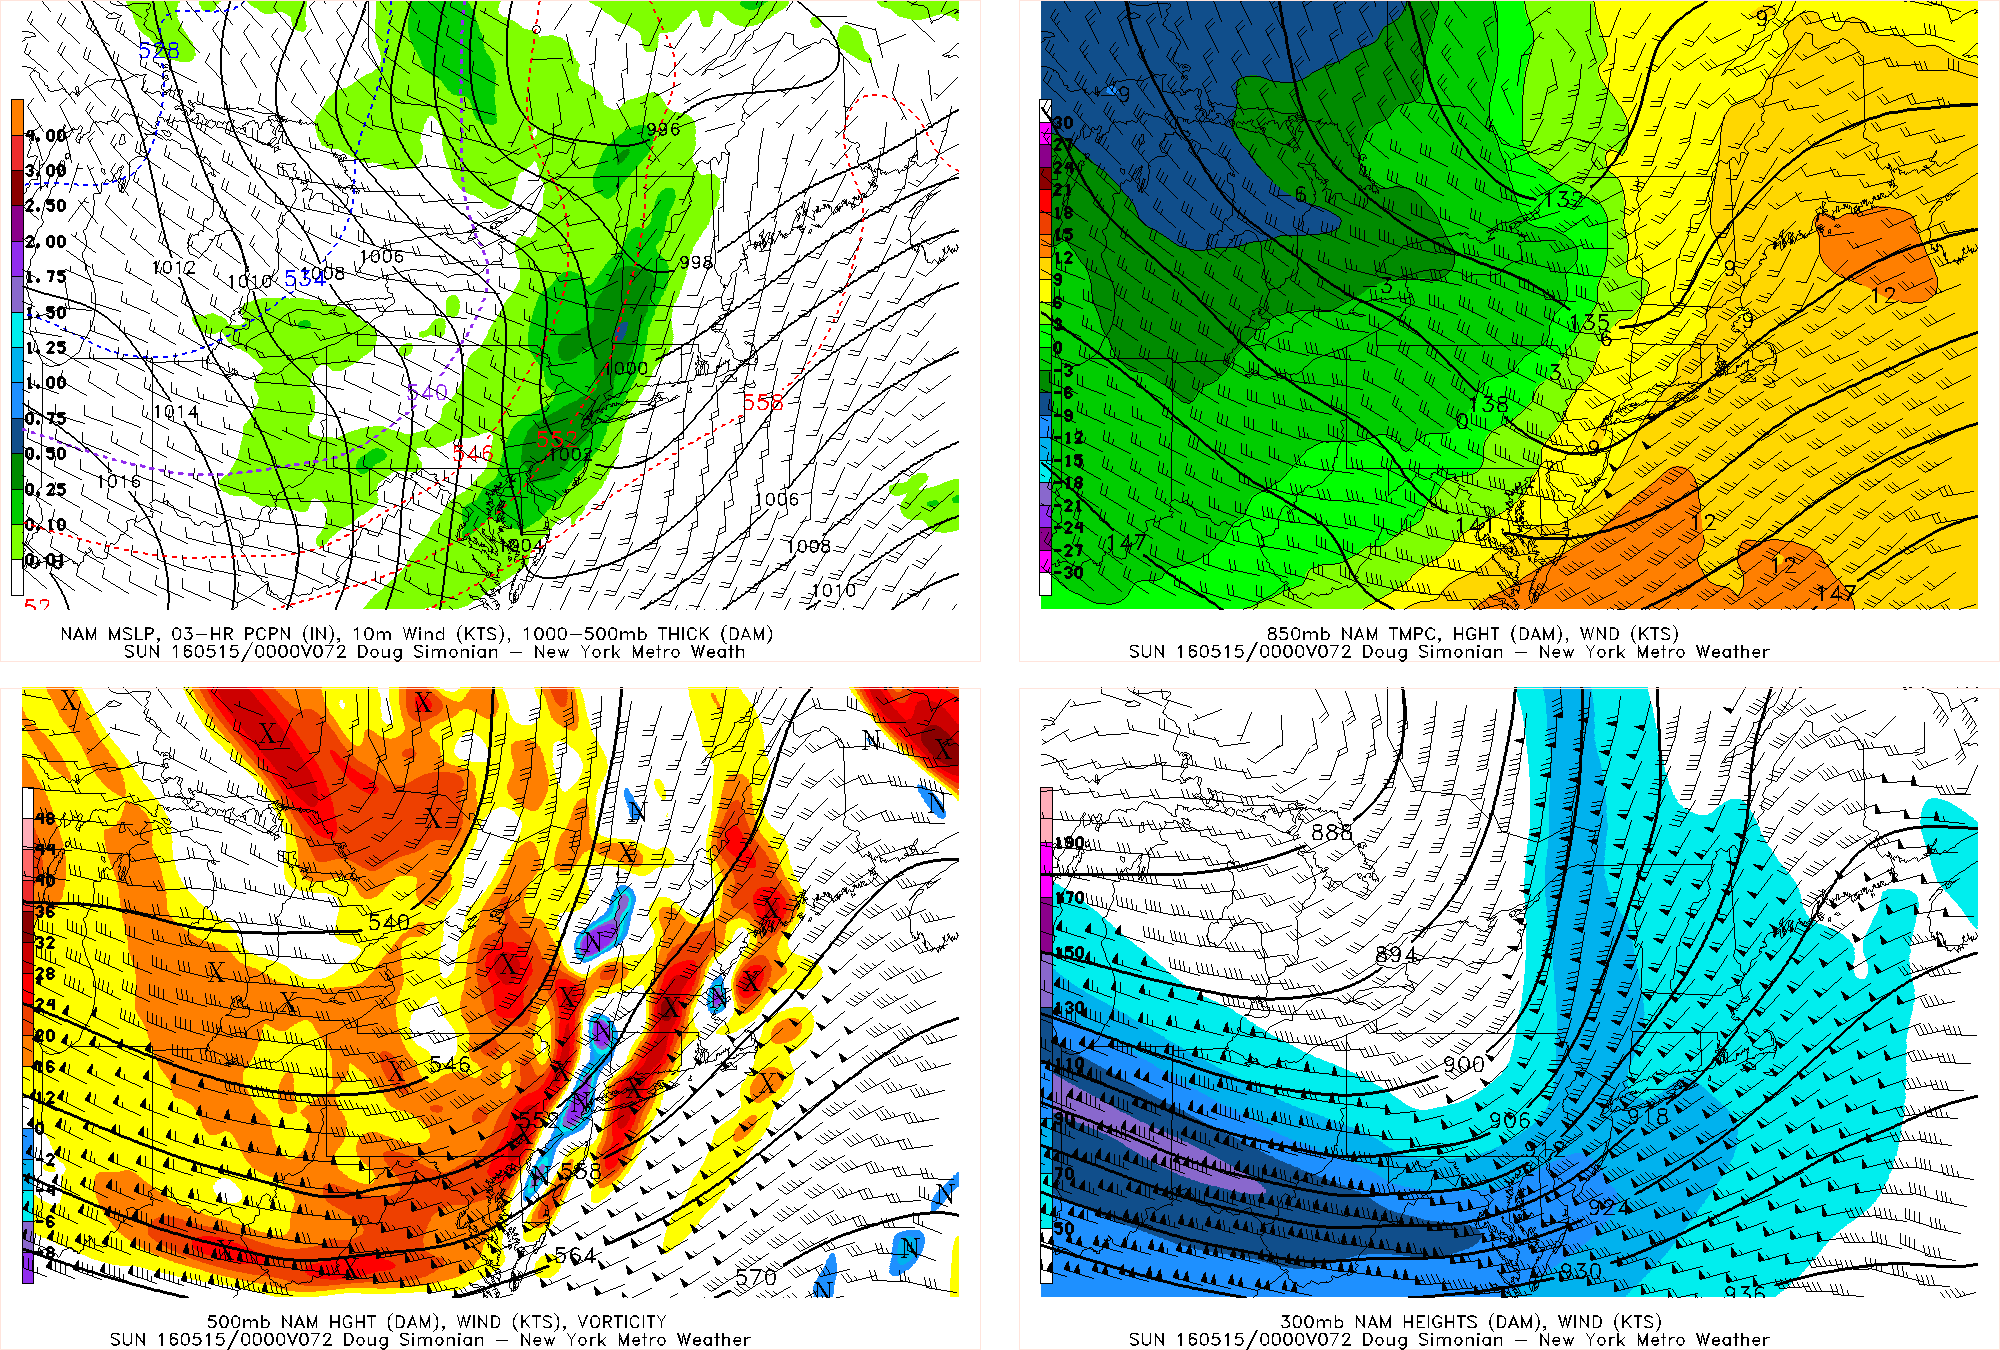 NAM showing cold front and shortwave trough with 50kt winds at 500mb moving through the region with showers and possible thunderstorms Saturday evening.